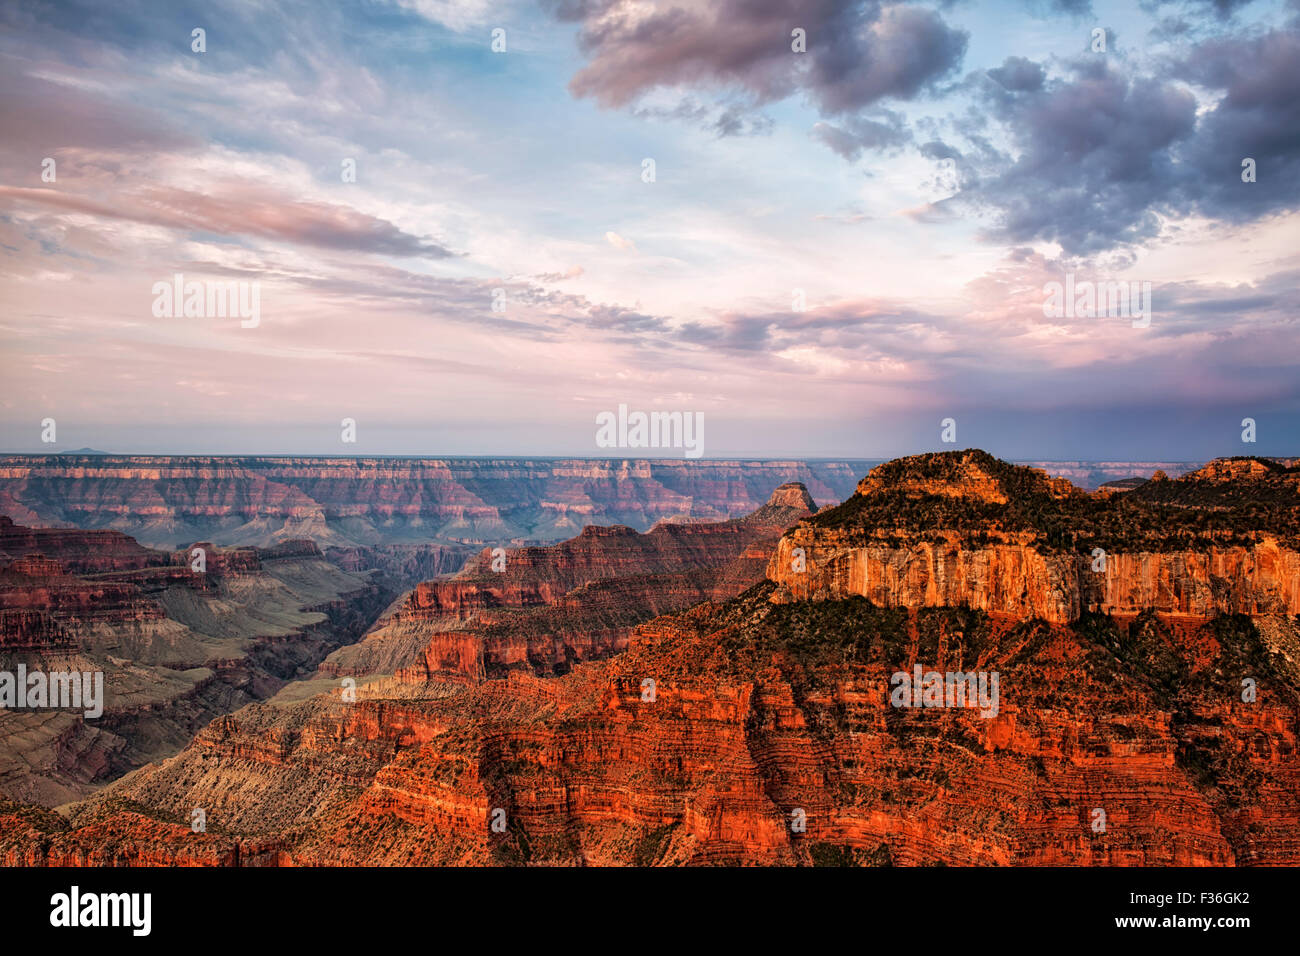 The warmth of sunrise light on the North Rim of Arizona's Grand Canyon National Park from Bright Angel Point. - Stock Image